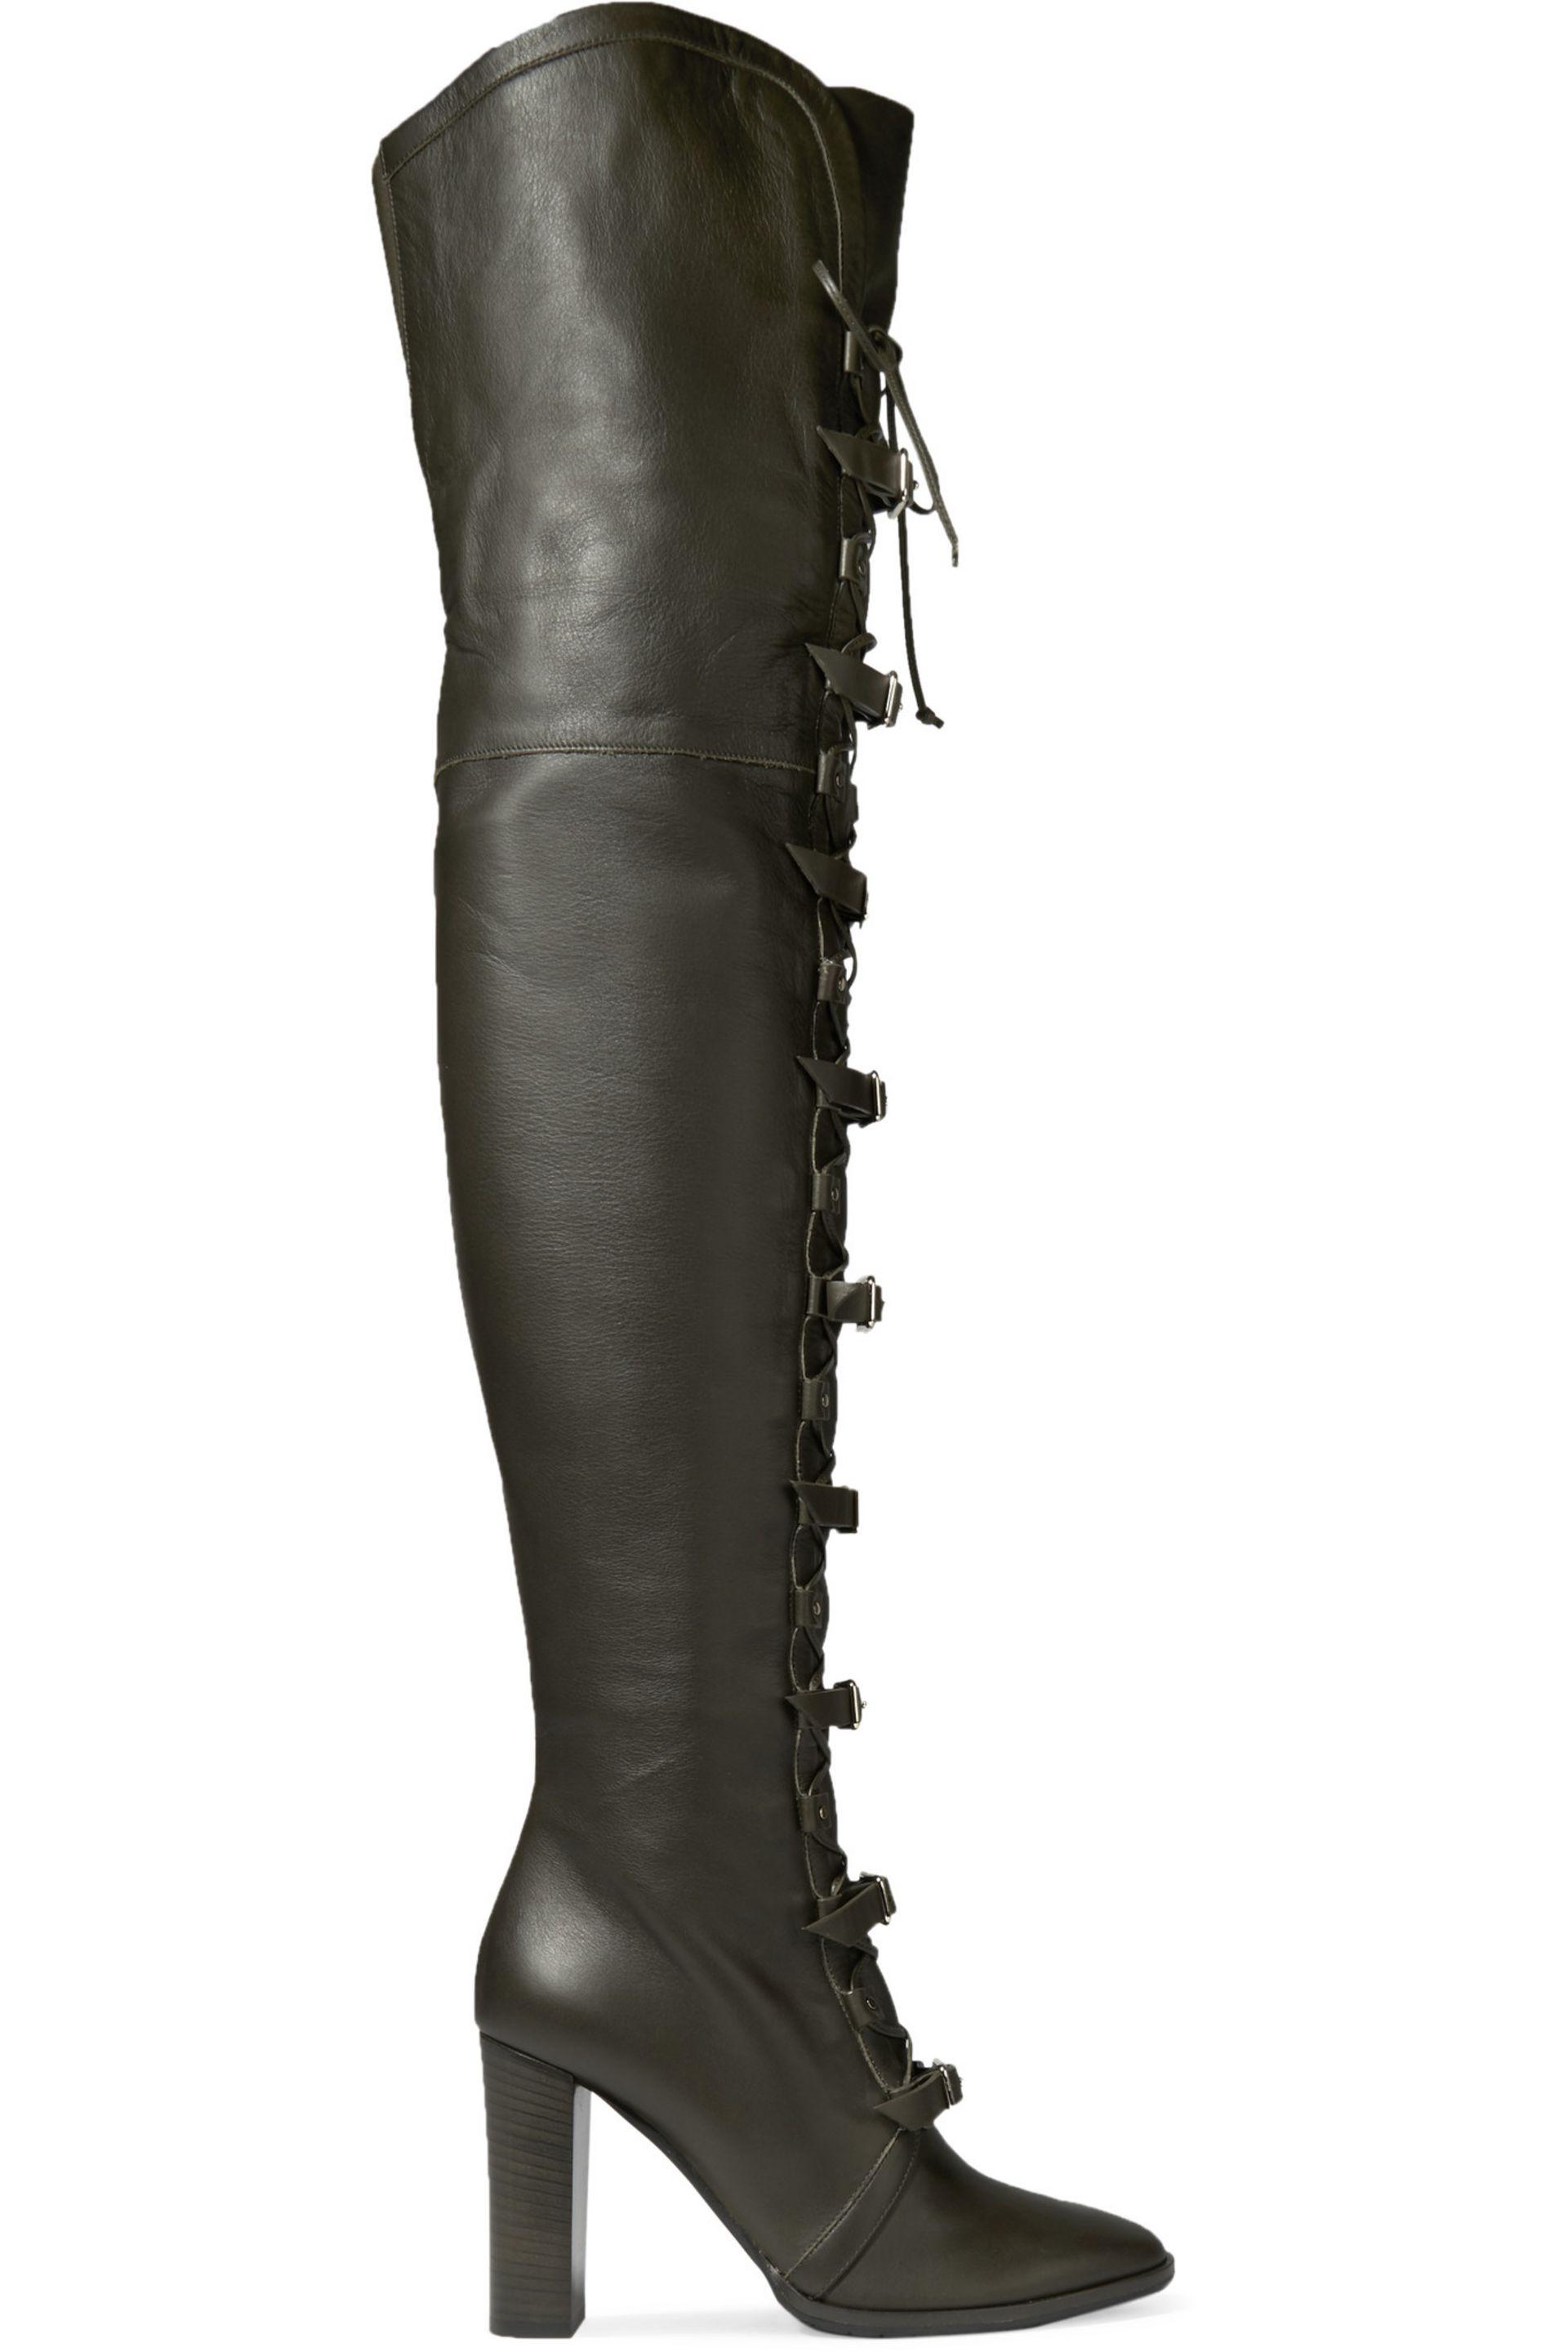 0affd9ad997 Lyst - Jimmy Choo Maloy Leather Over-the-knee Boots in Green